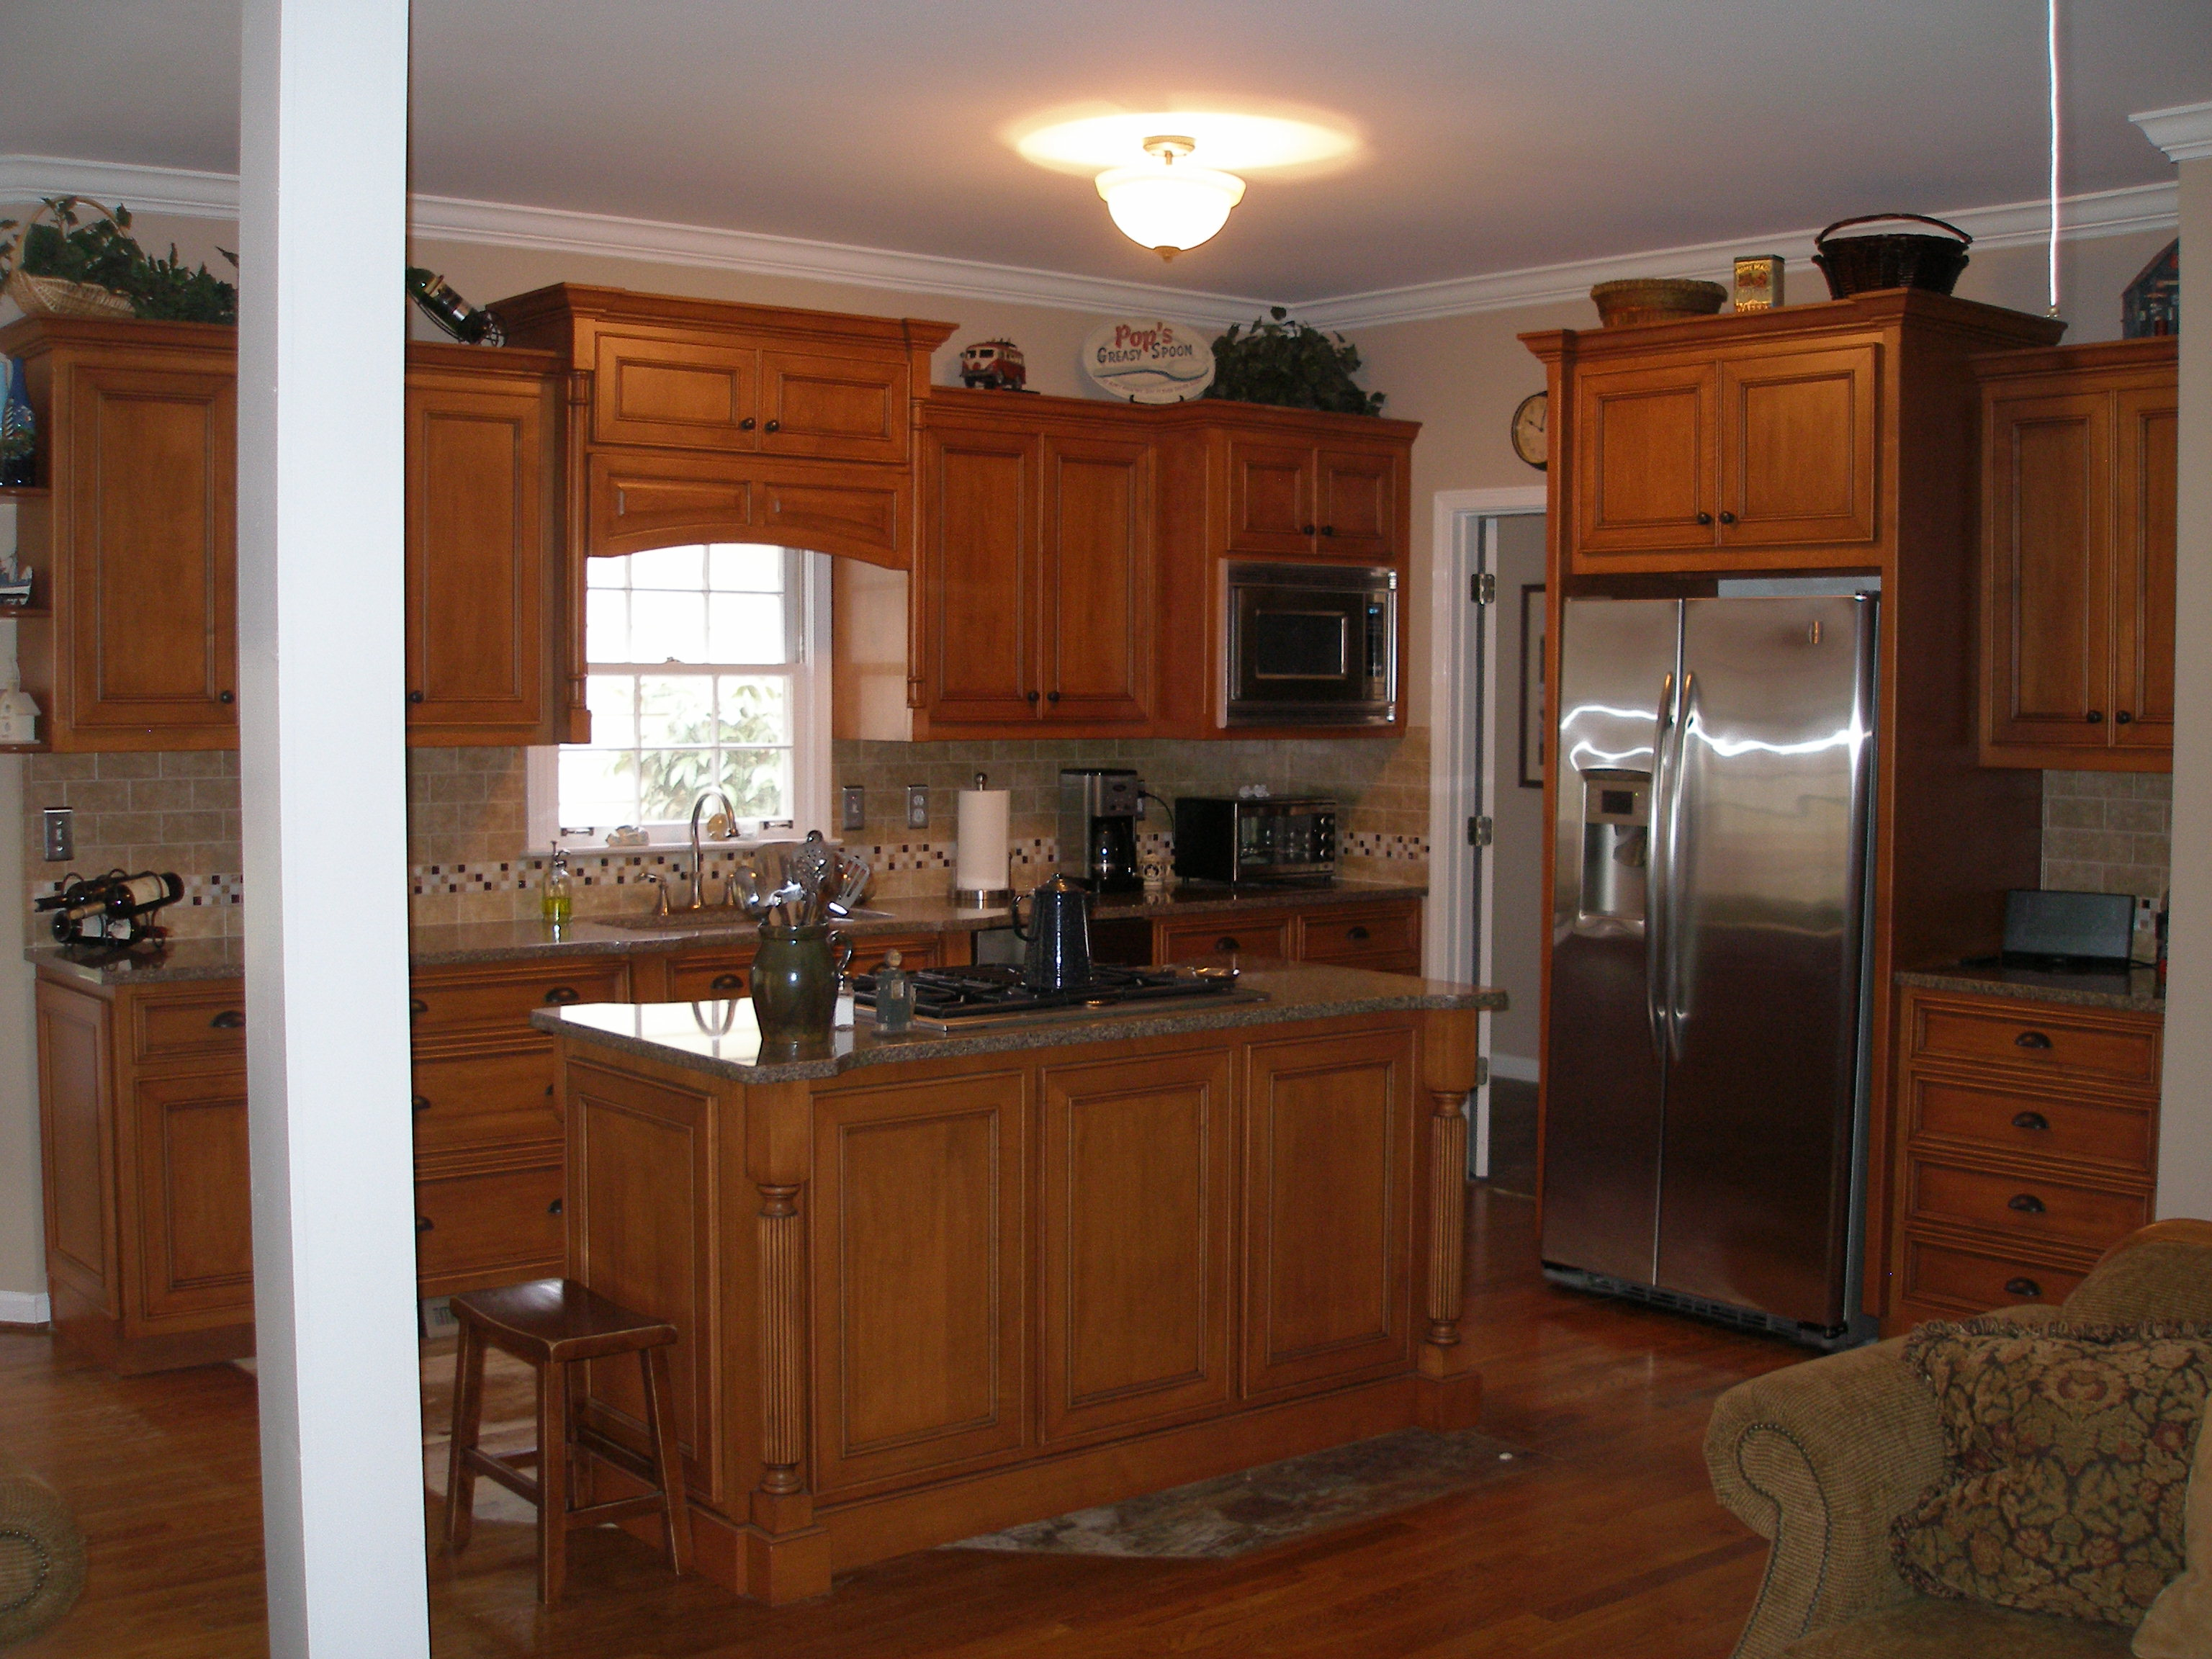 BUILDING CUSTOM CABINETS IN ATLANTA OF OVER 30 YEARS